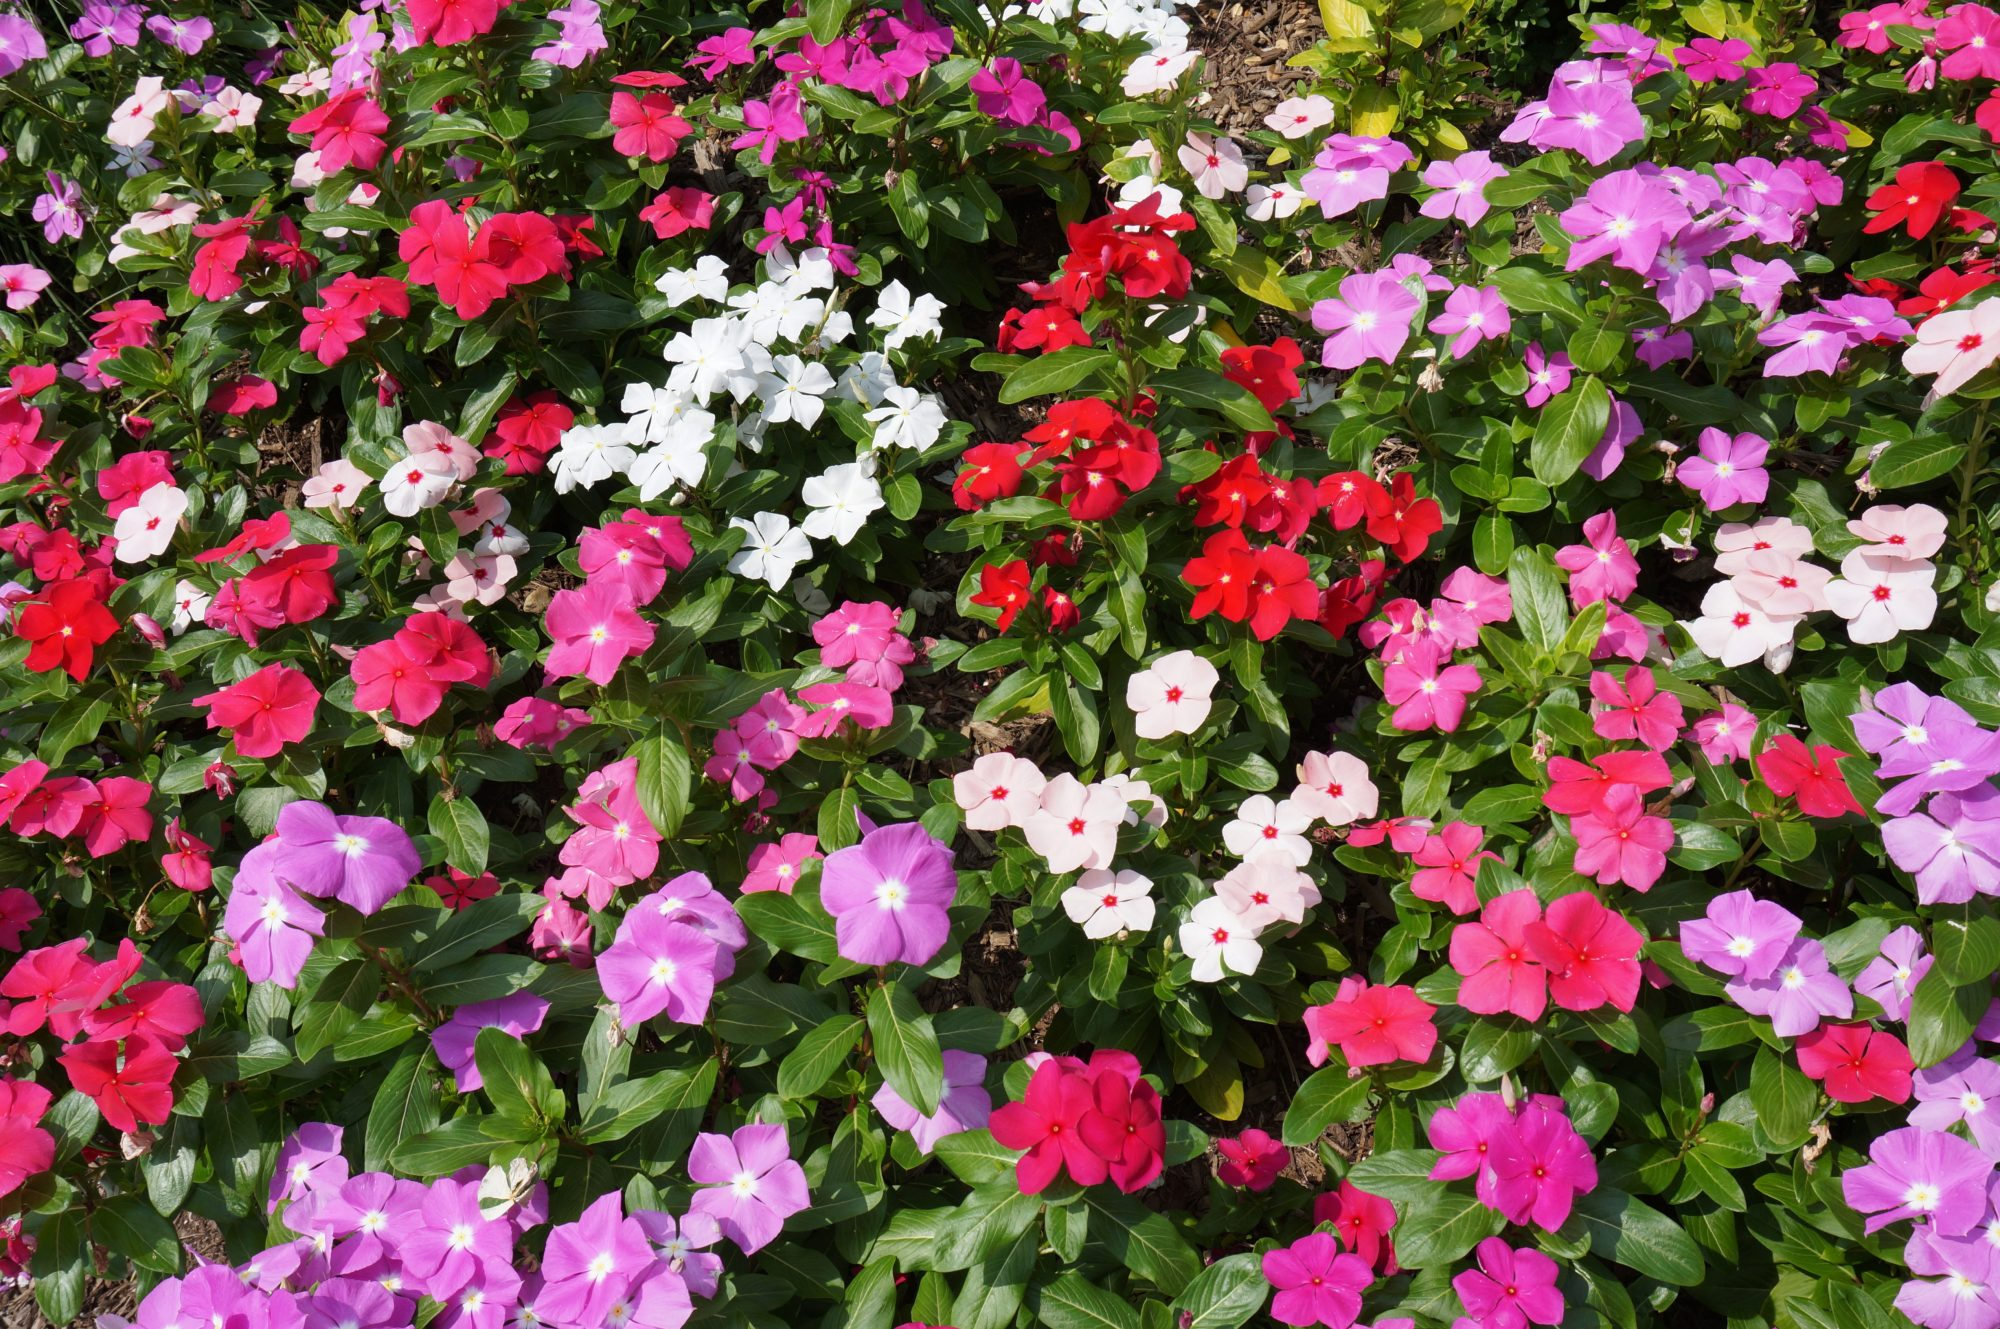 Variety of Impatiens Colors